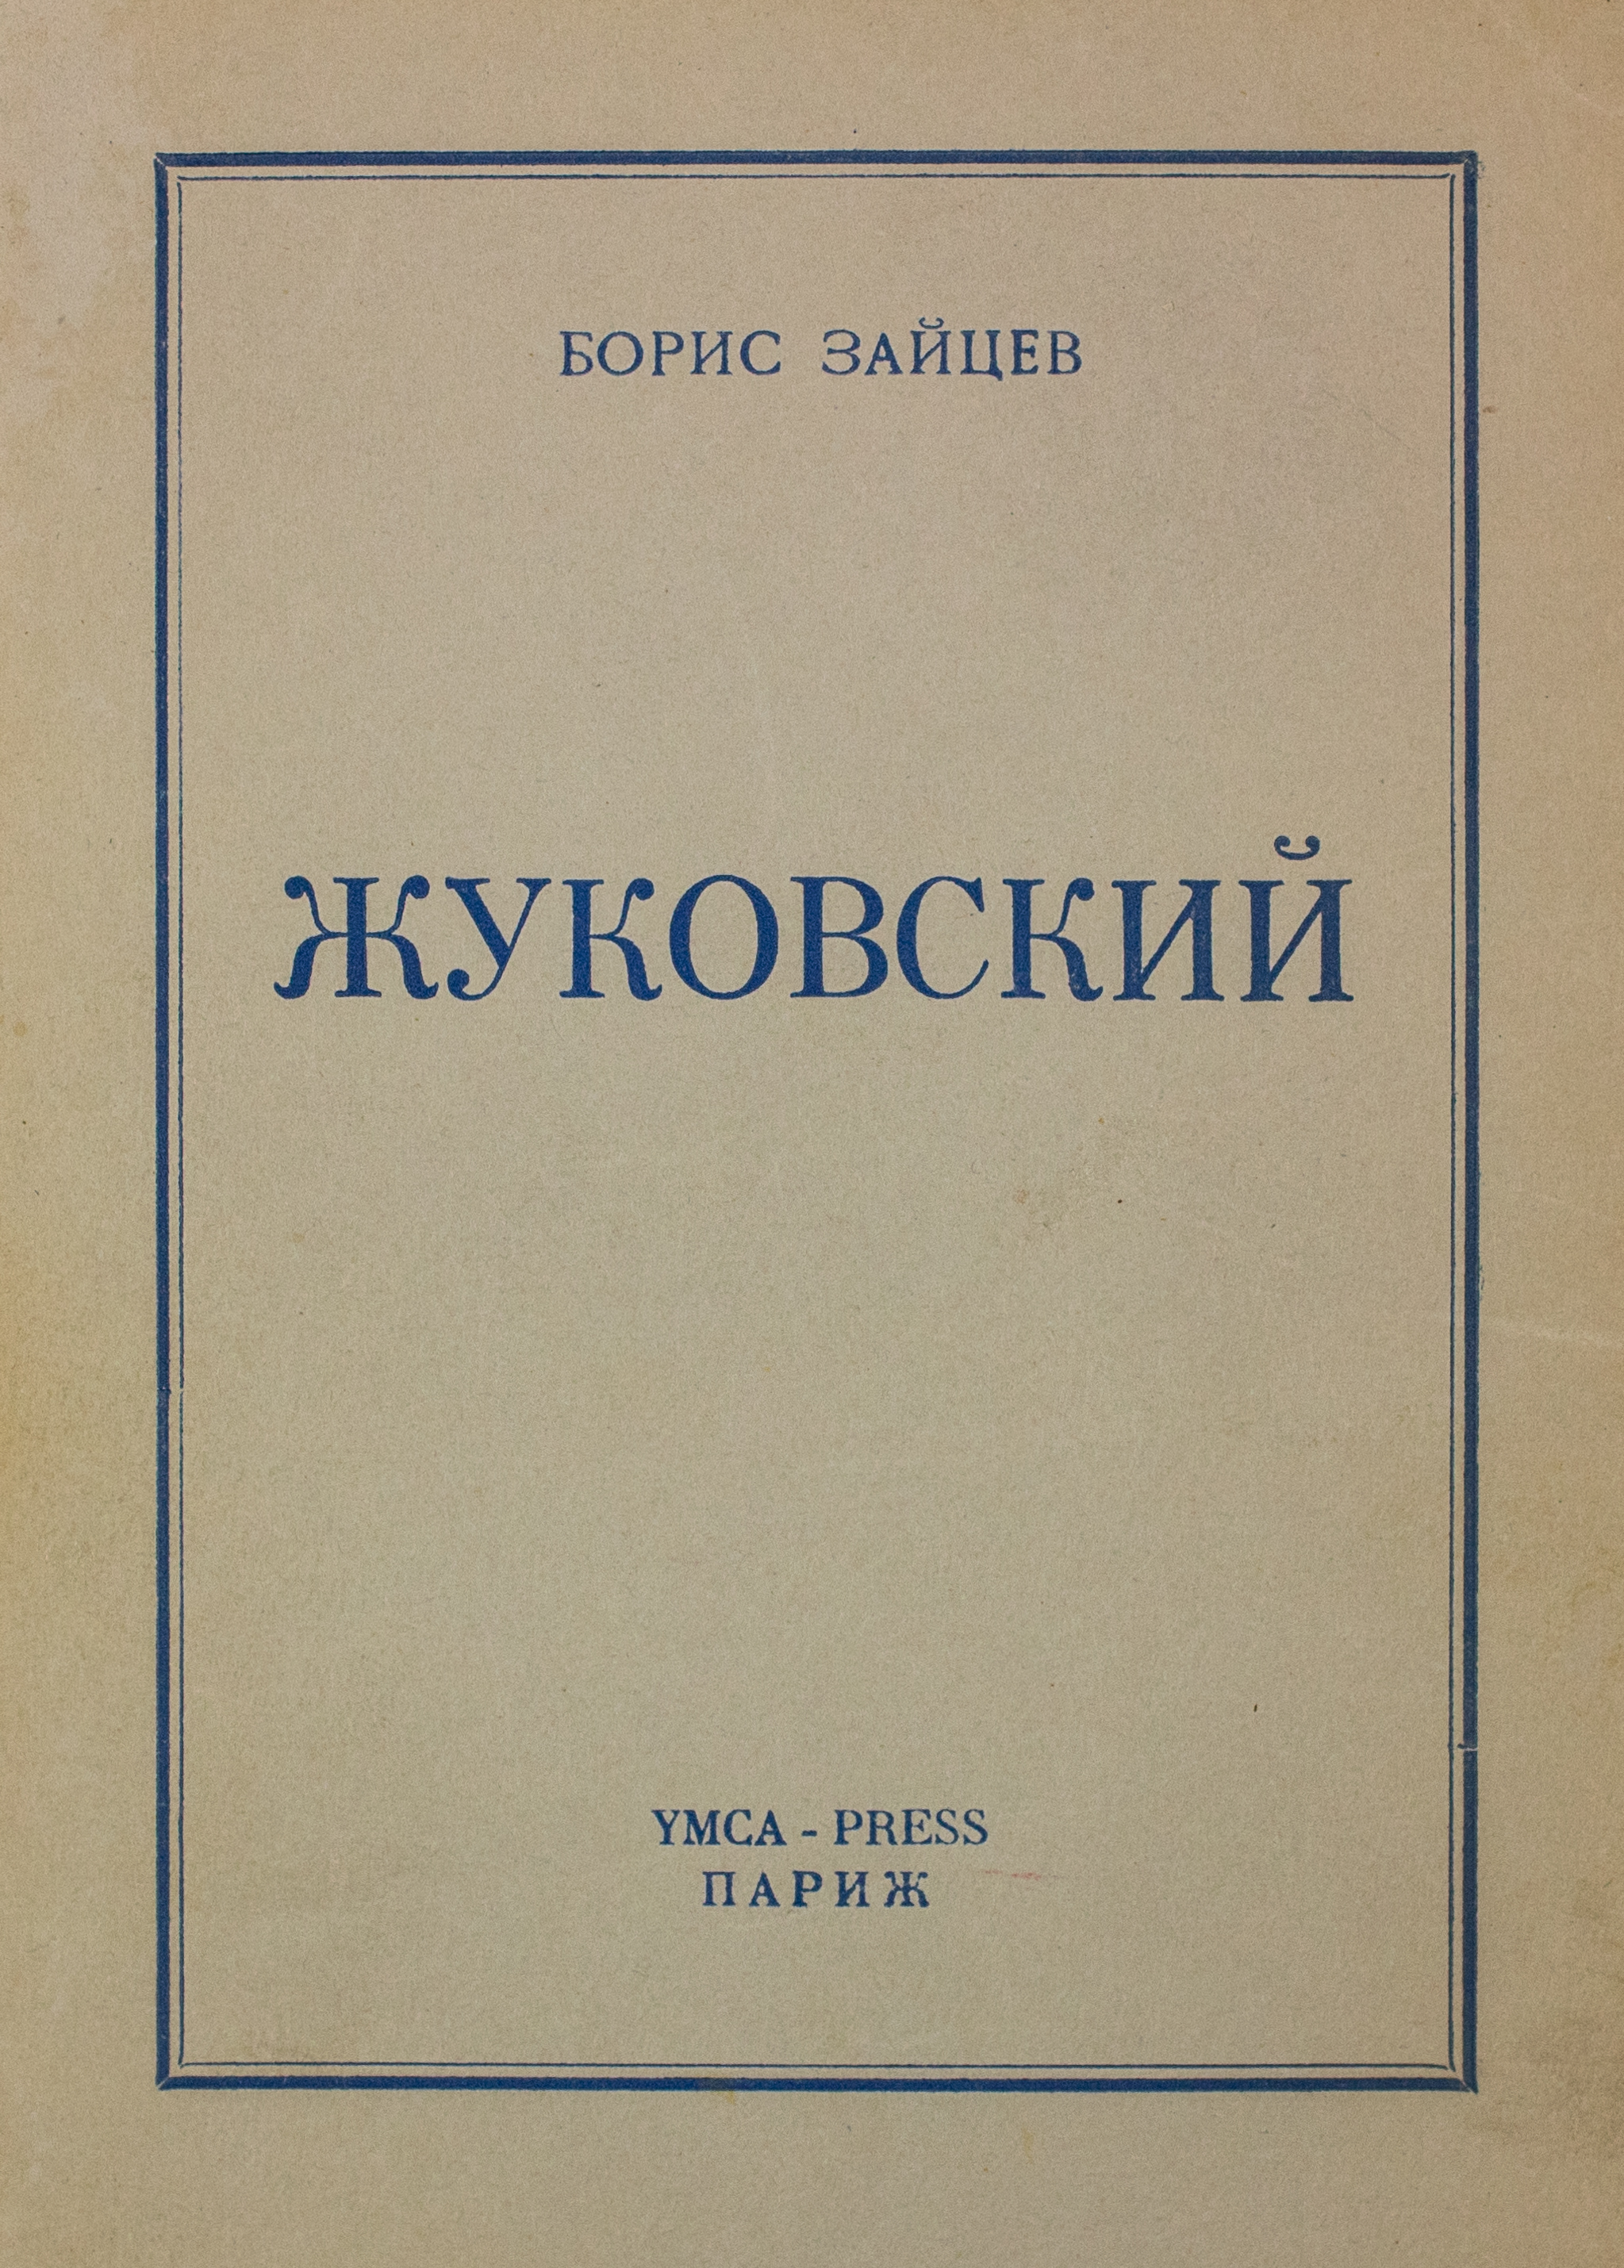 Lot 420 - ZAÏTSEV, Boris. La vie de Joukovski. Paris, YMCA press, 1951. Envoi autographe de [...]